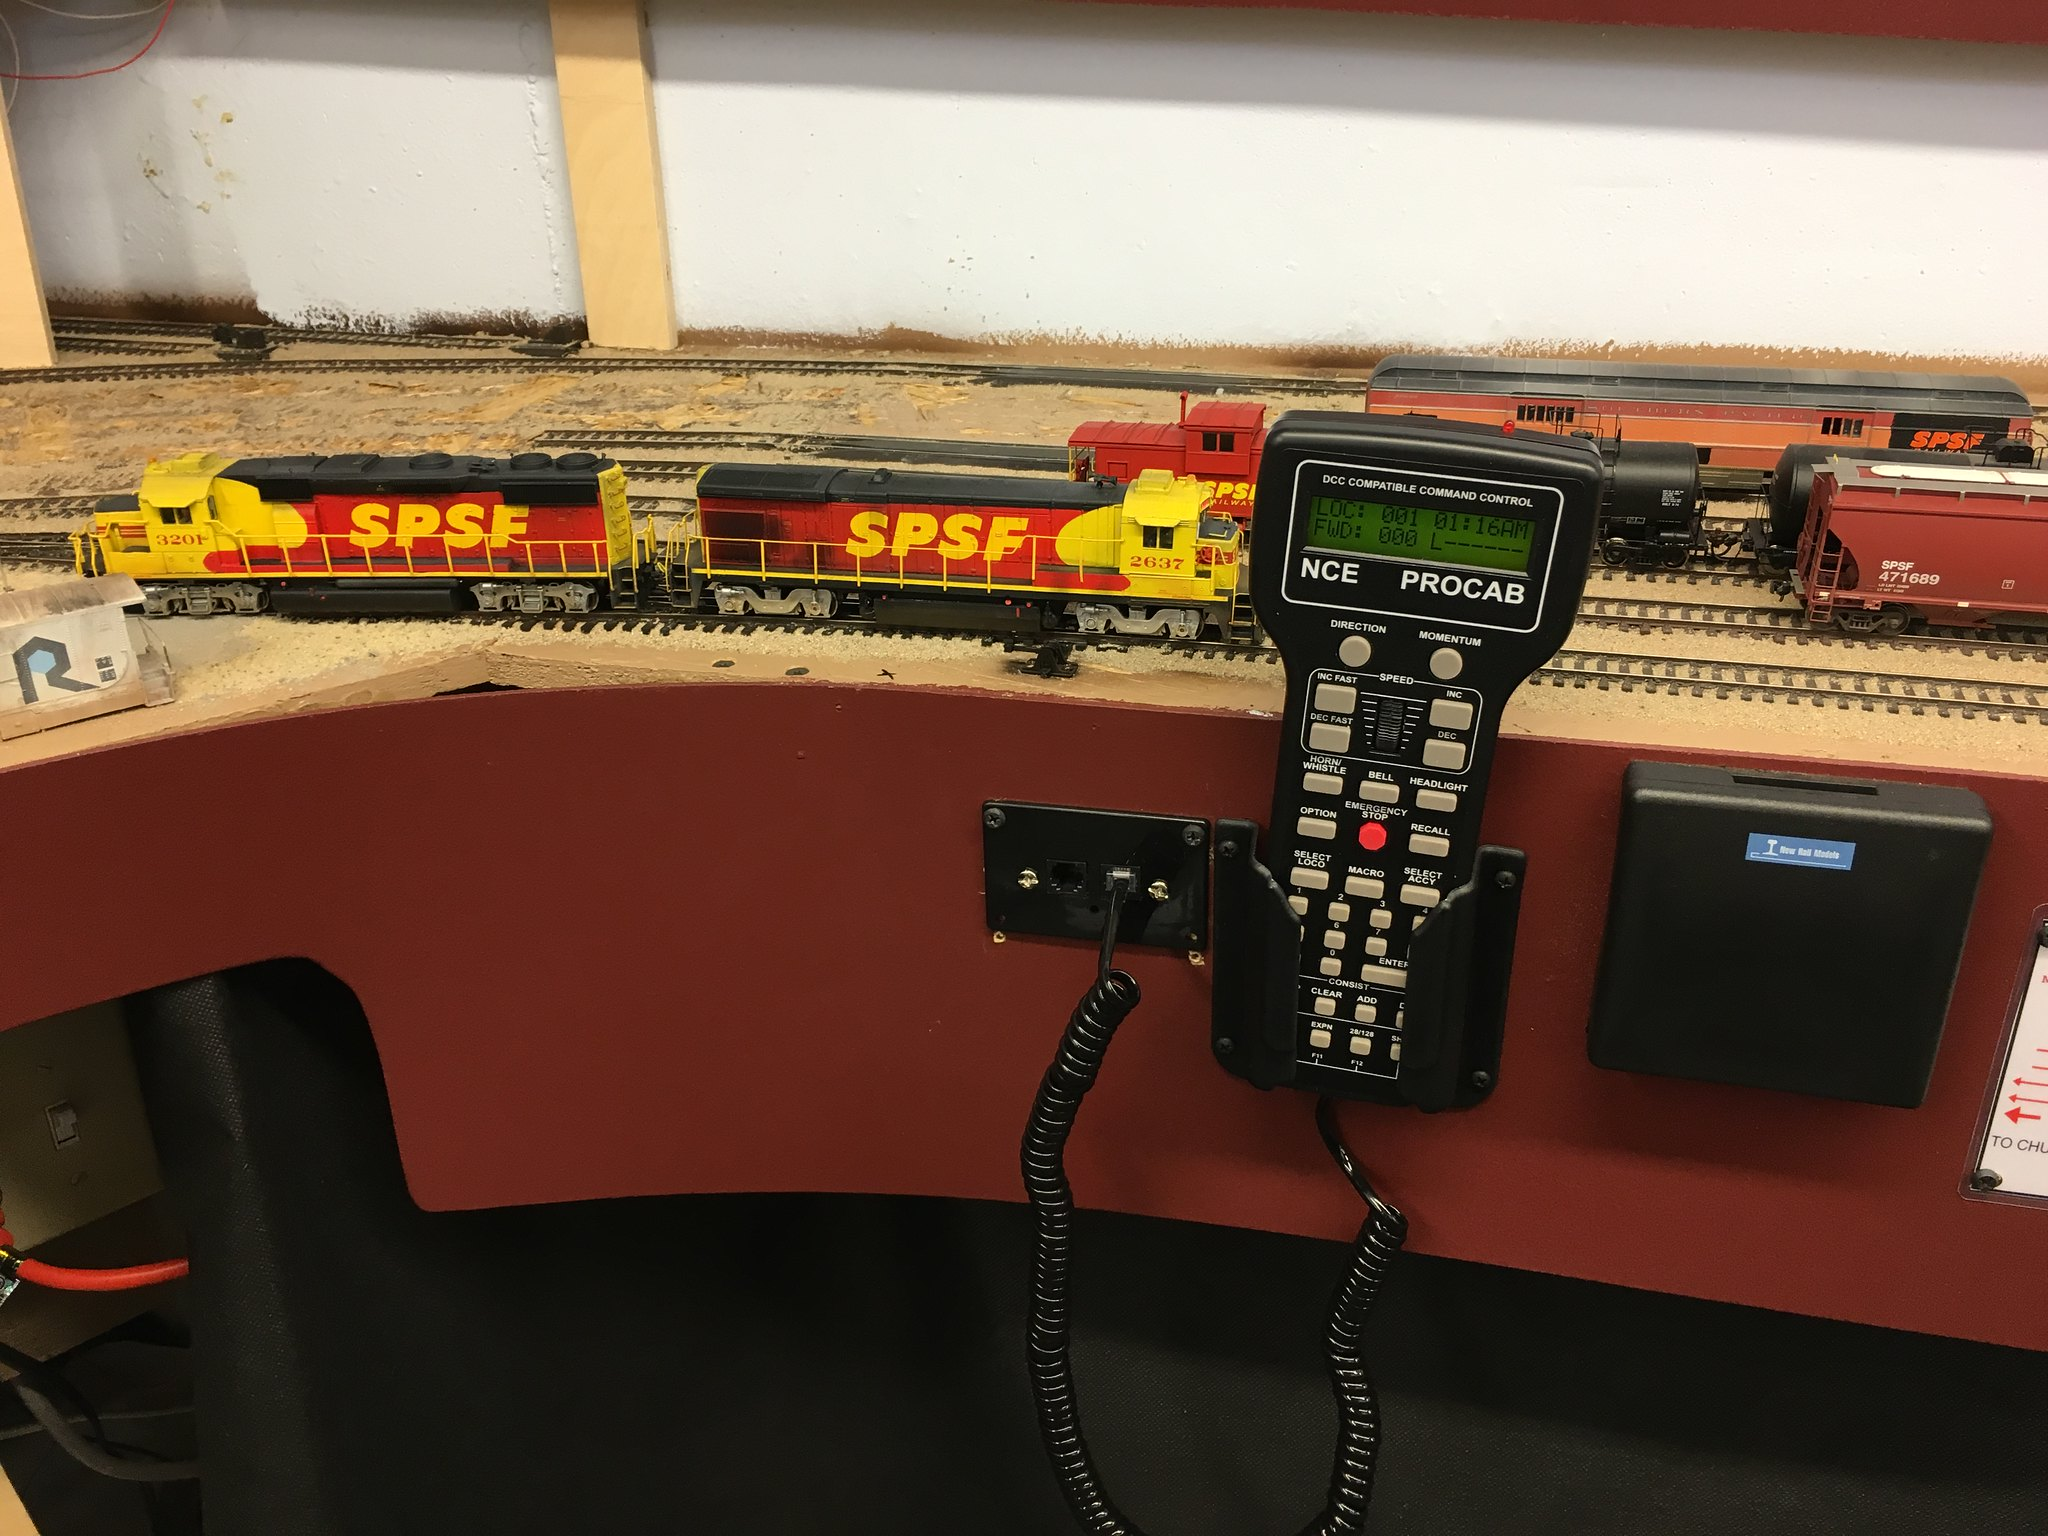 Spsf Meadow Sub Converting From Digitrax To Nce On A Small Mid Size Dcc Wiring Track Over The Past Three Weeks I Have Converted My Layout System What Follows Is Personal Experience Conversion For